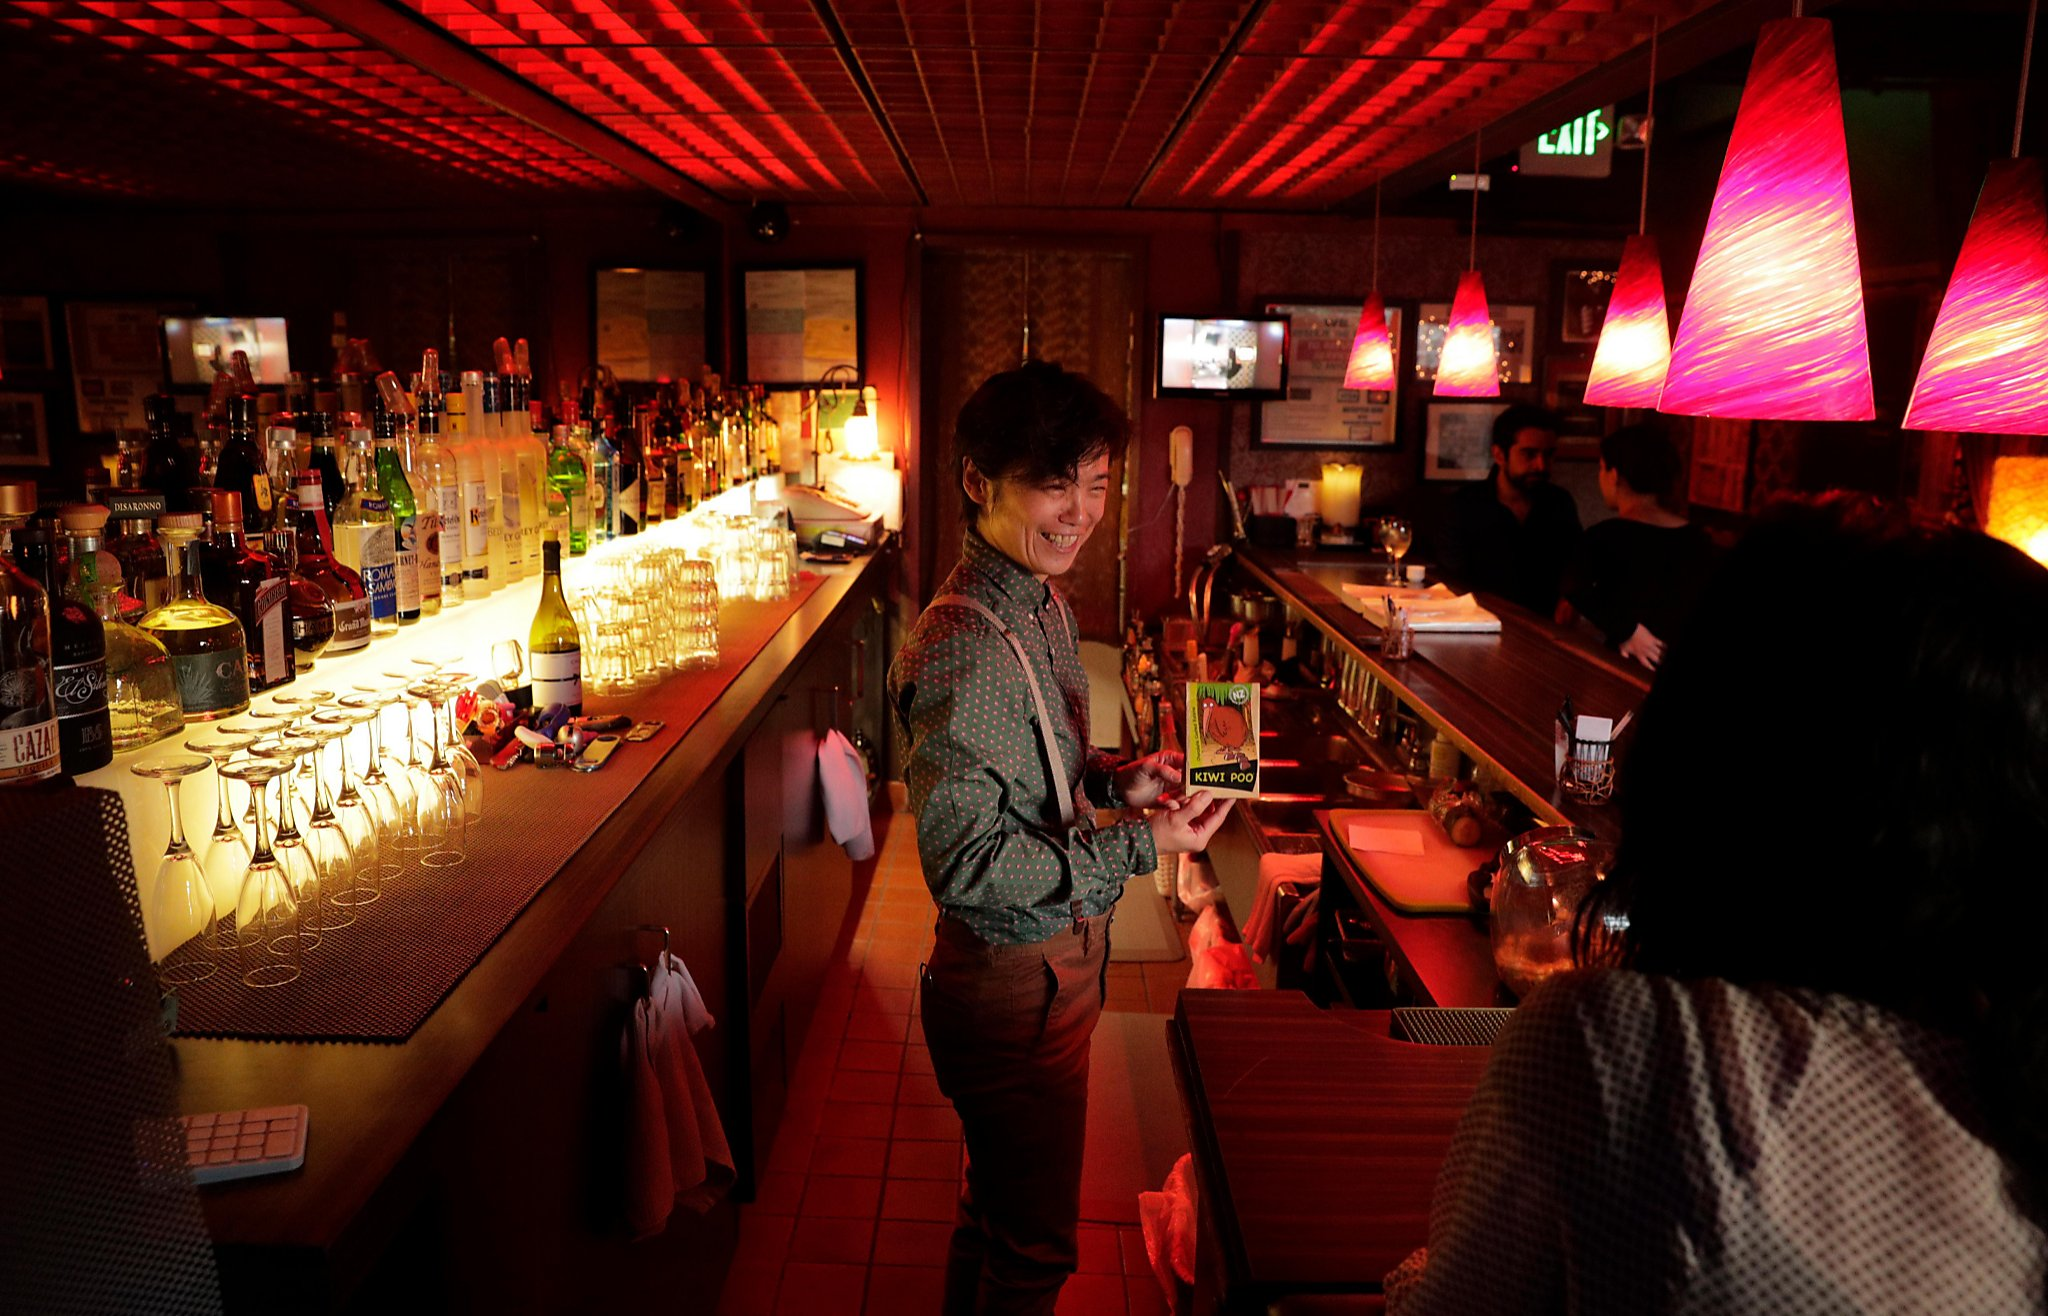 Artist's Life: Bartending Pays For Dive Bar Photo Project